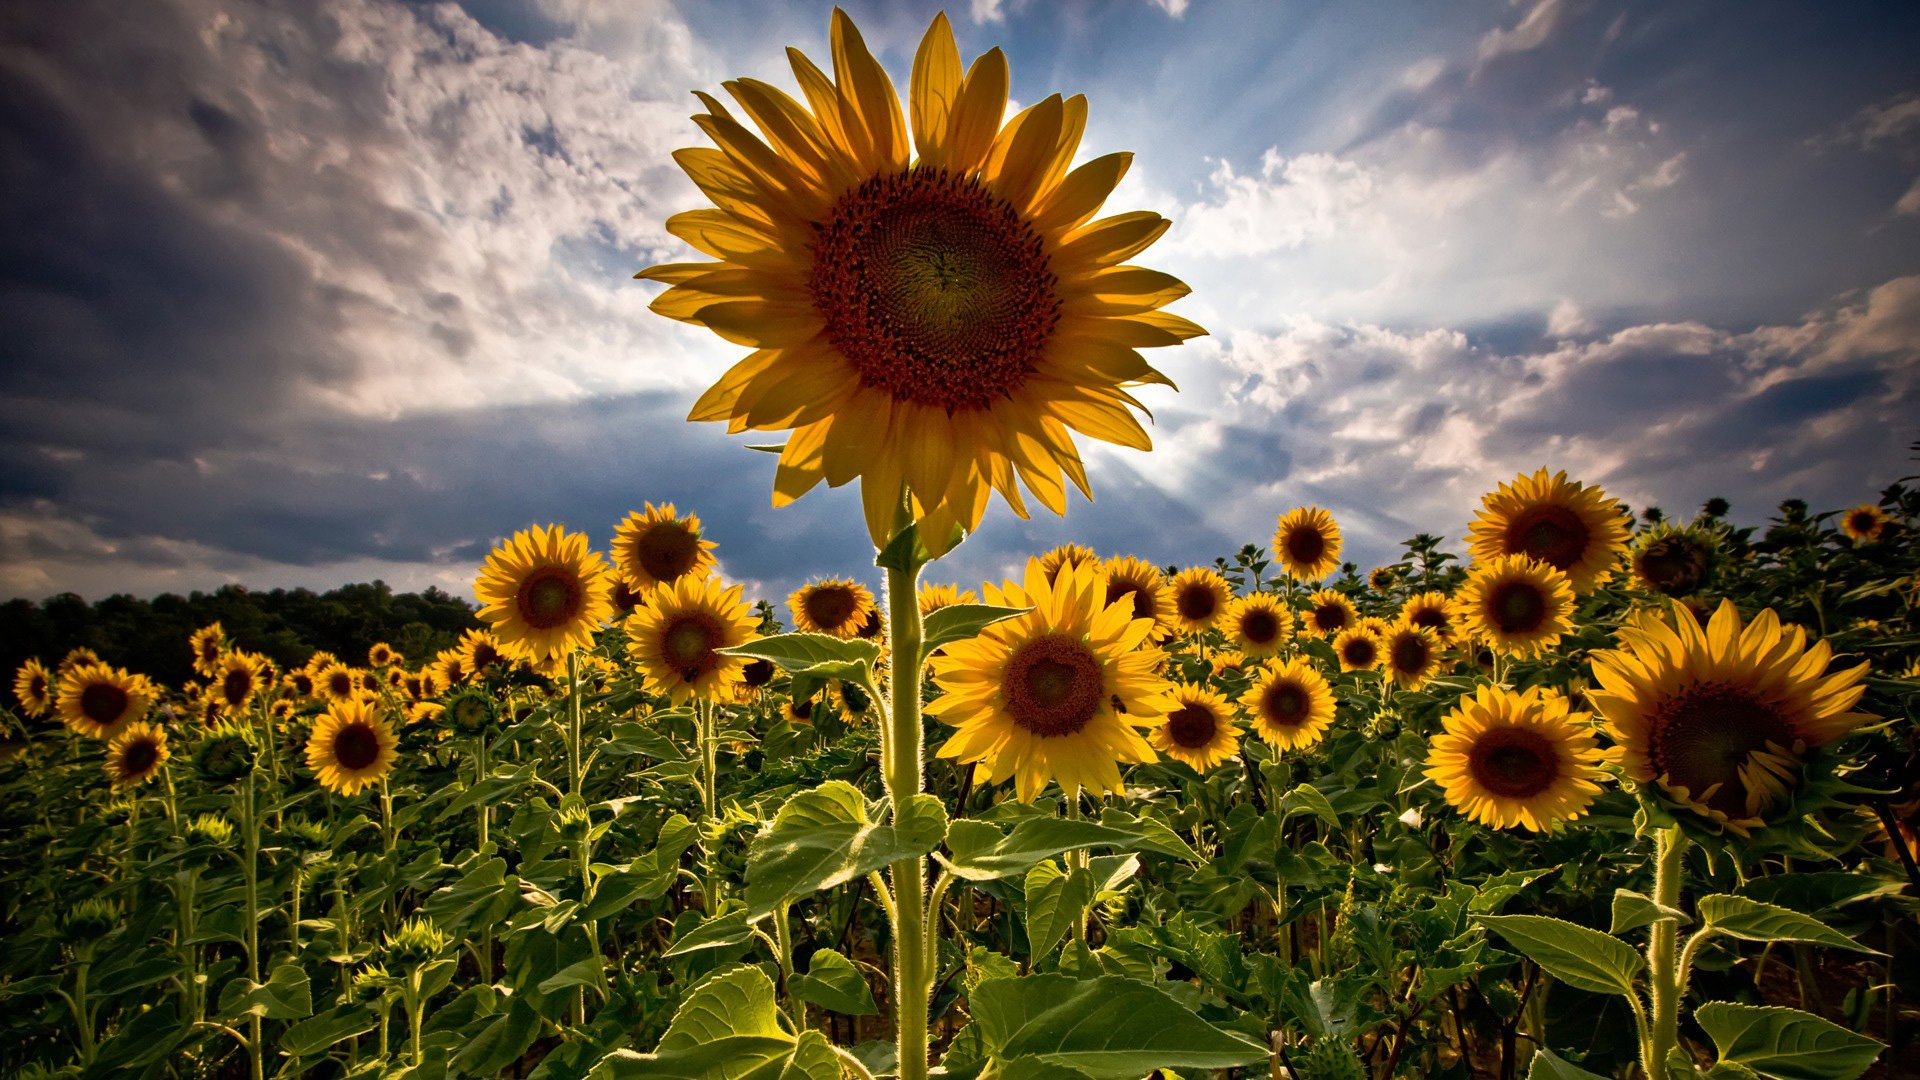 Sunflowers Field   1920x1080   169 1920x1080